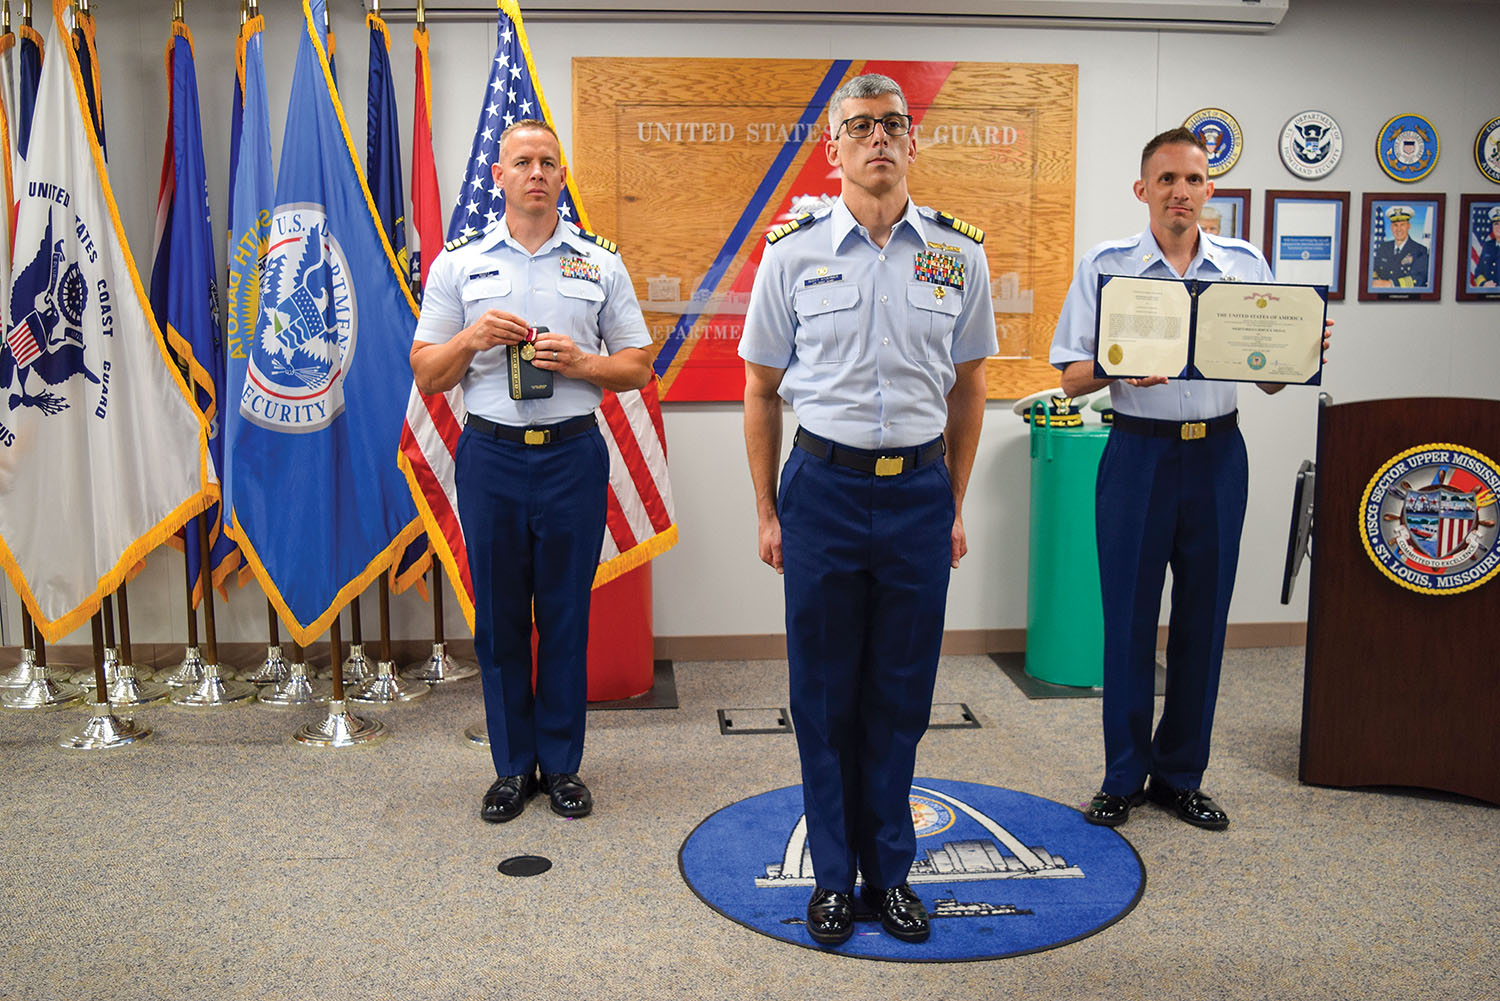 From left, Cmdr. Richard M. Scott, Capt. Scott A. Stoermer and Senior Chief Petty Officer Scott A. Manfre, command senior chief, Sector Upper Mississippi, are shown at the sector's May 27 change of command ceremony, during which Stoermer passed command to Scott. (U.S. Coast Guard photo by Petty Officer 2nd Class Monika Spies)